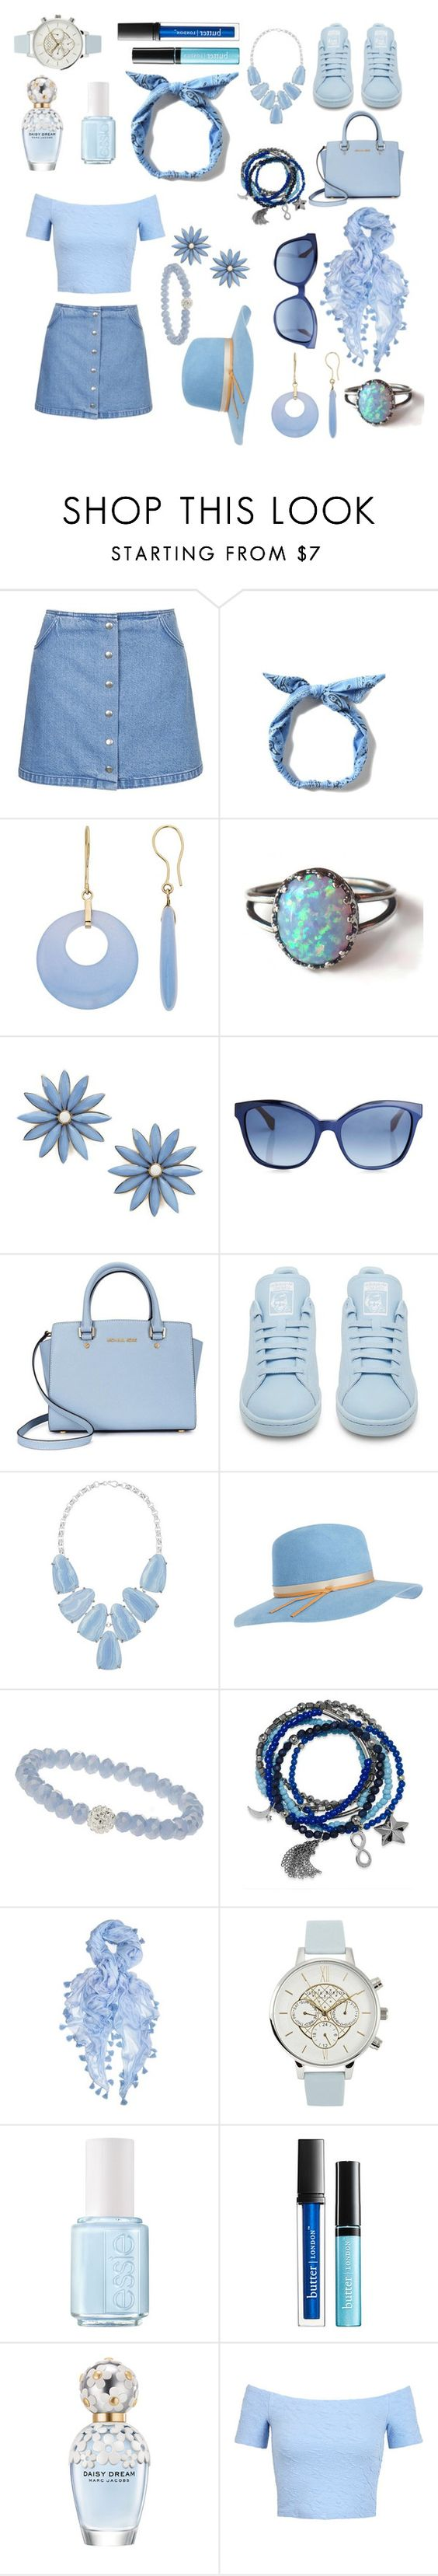 """{Blue mistake}"" by gracemcgibbon ❤ liked on Polyvore featuring Topshop, R.J. Graziano, Fendi, Michael Kors, adidas, Kendra Scott, Calypso Private Label, Wallis, Bar III and Feather & Stone"